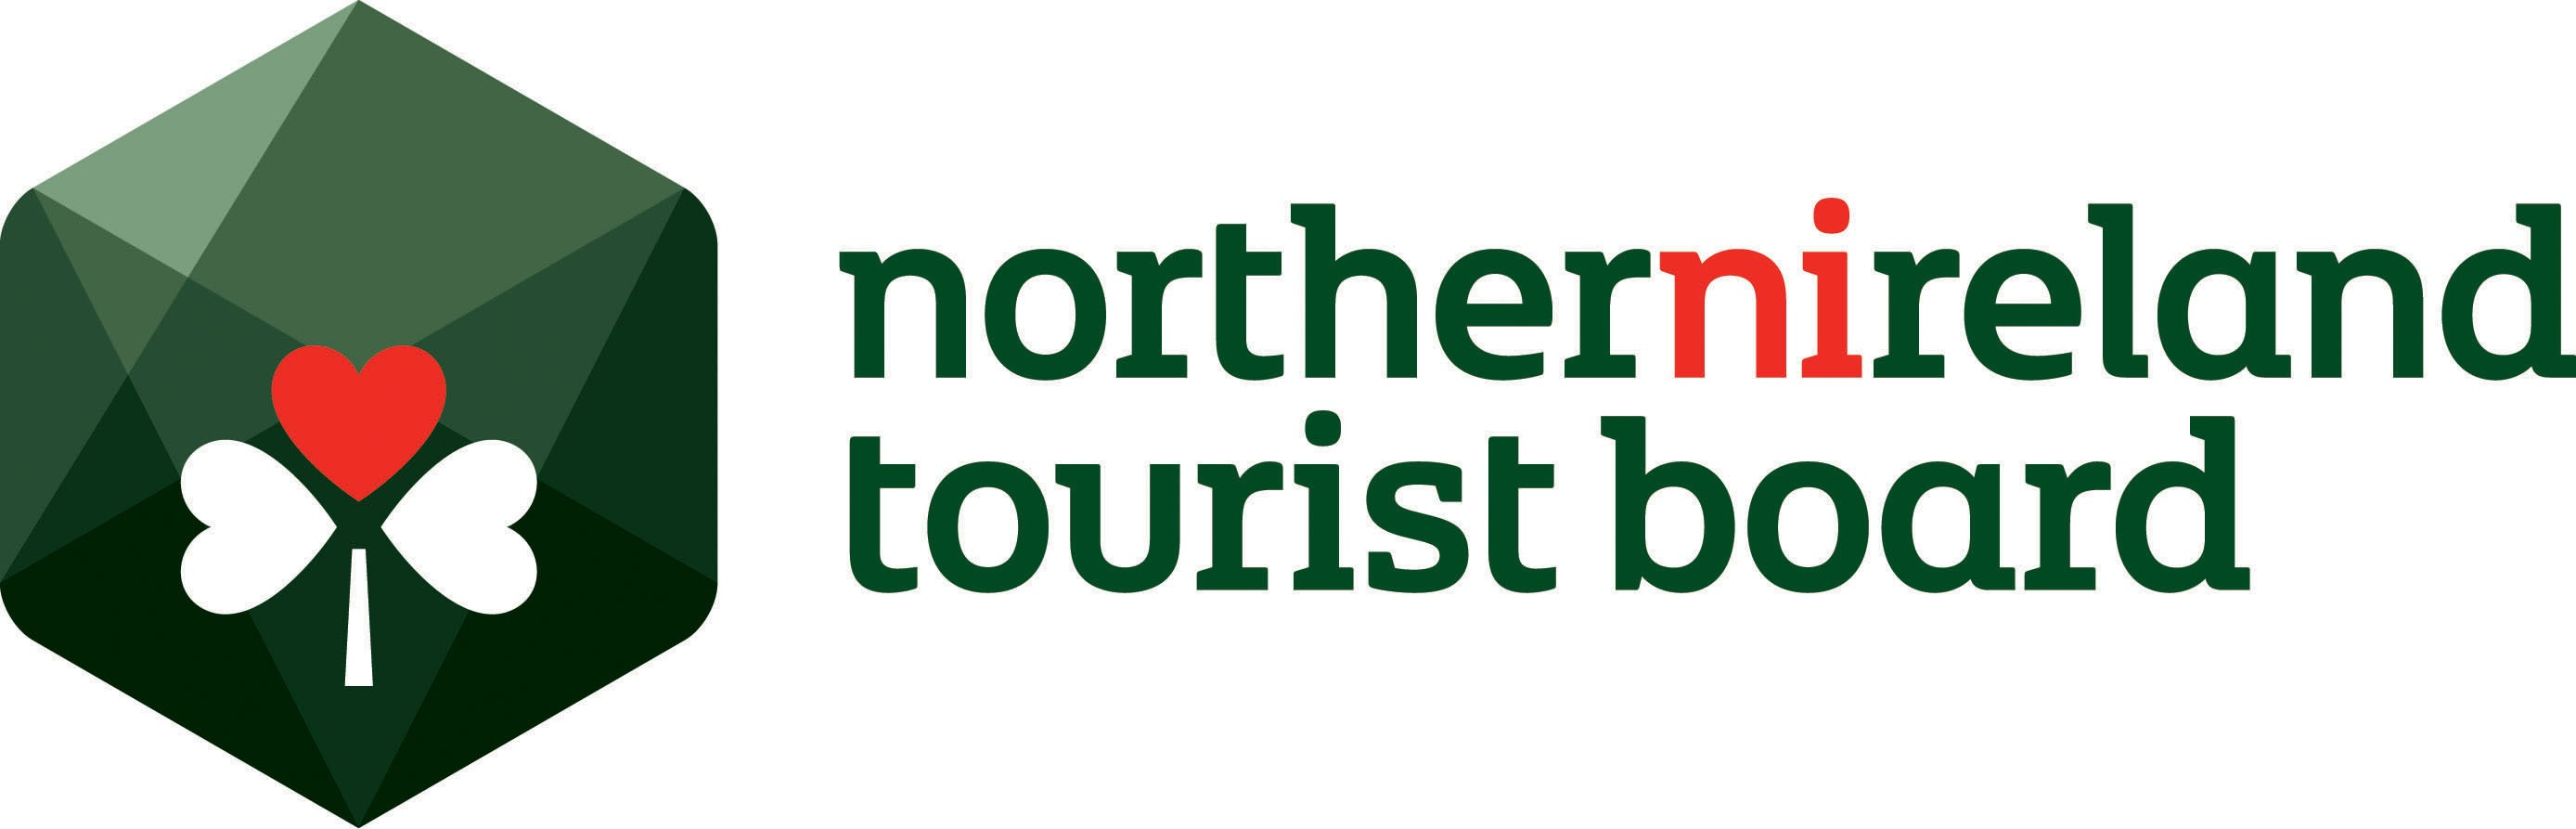 NI Tourist Board Image